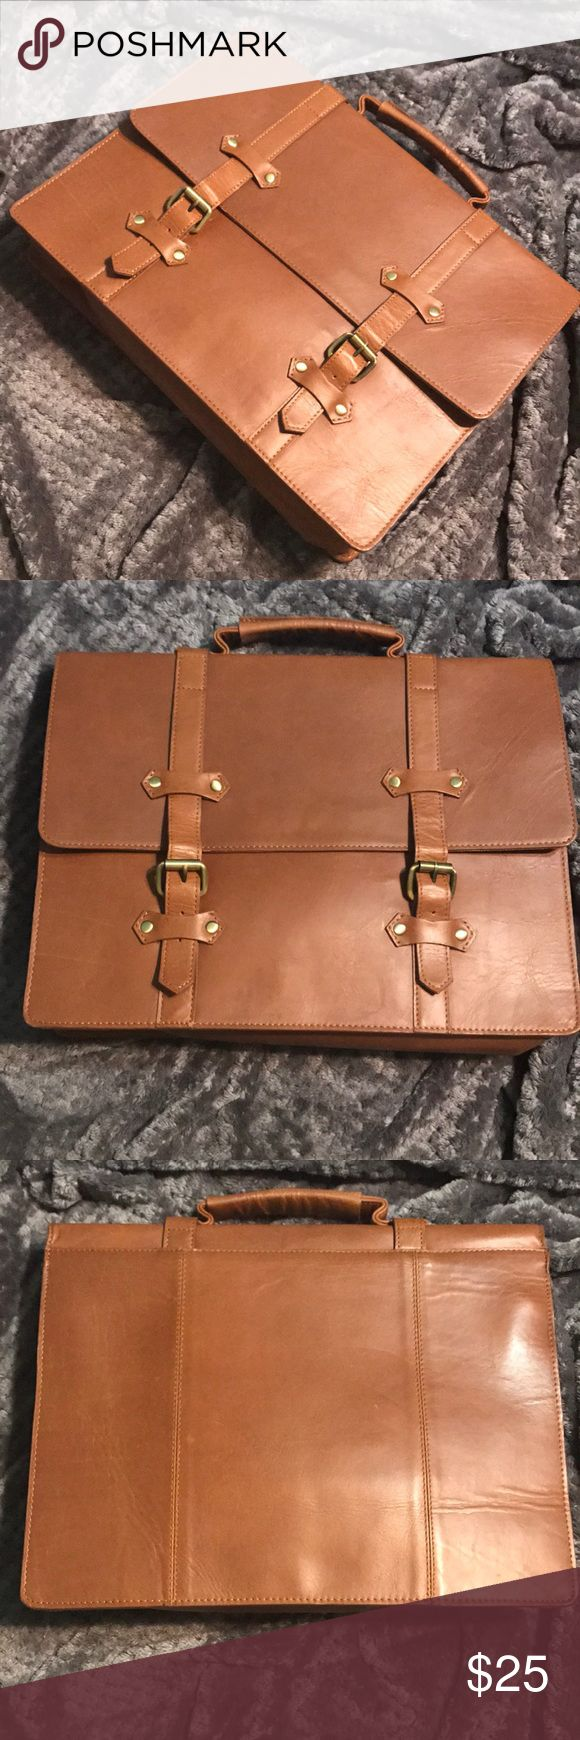 Ladies 💯% leather satchel in caramel brown tan A gently used leather satchel from ASOS. Very sturdy and durable. A Great vintage item that can be used for school. It has hooks on the sides so that you can attach a strap. ASOS Bags Satchels